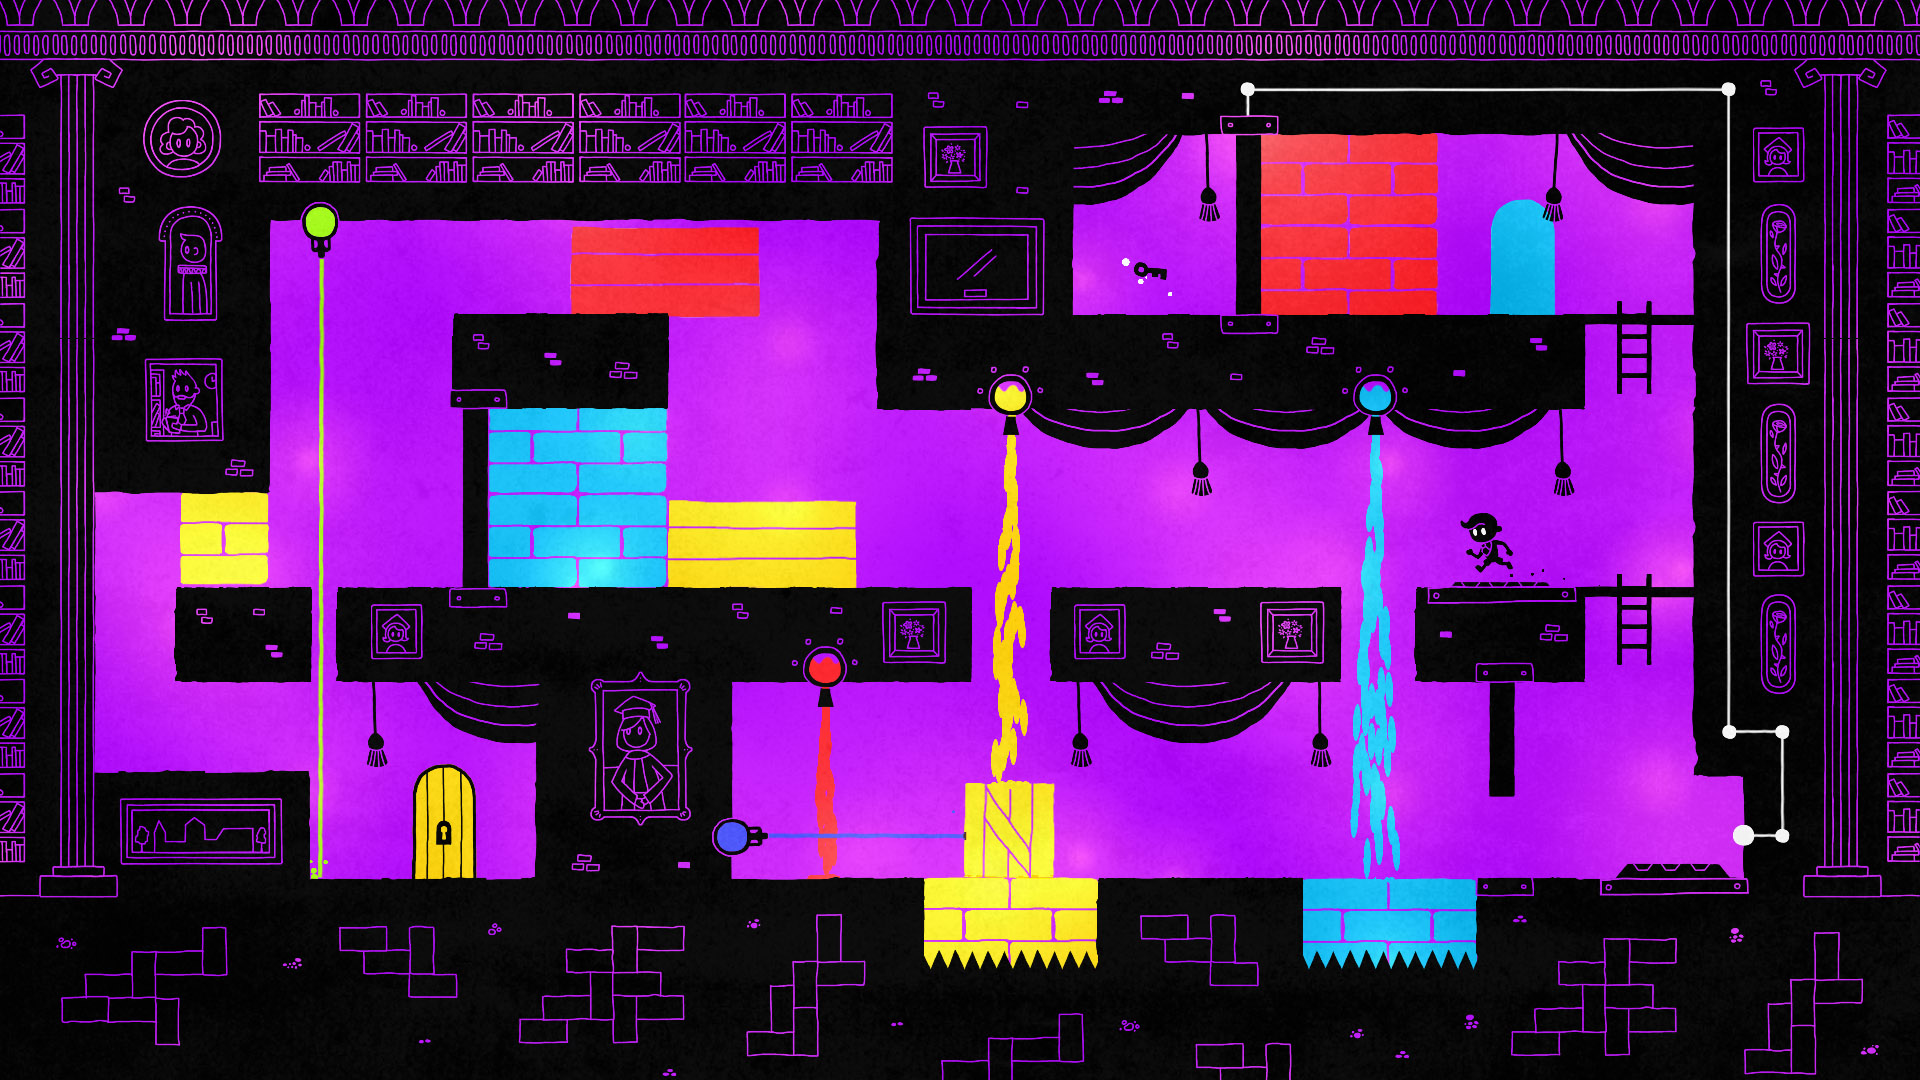 Hue the Game, available on Steam, Xbox One, PS4 and PlayStation Vita